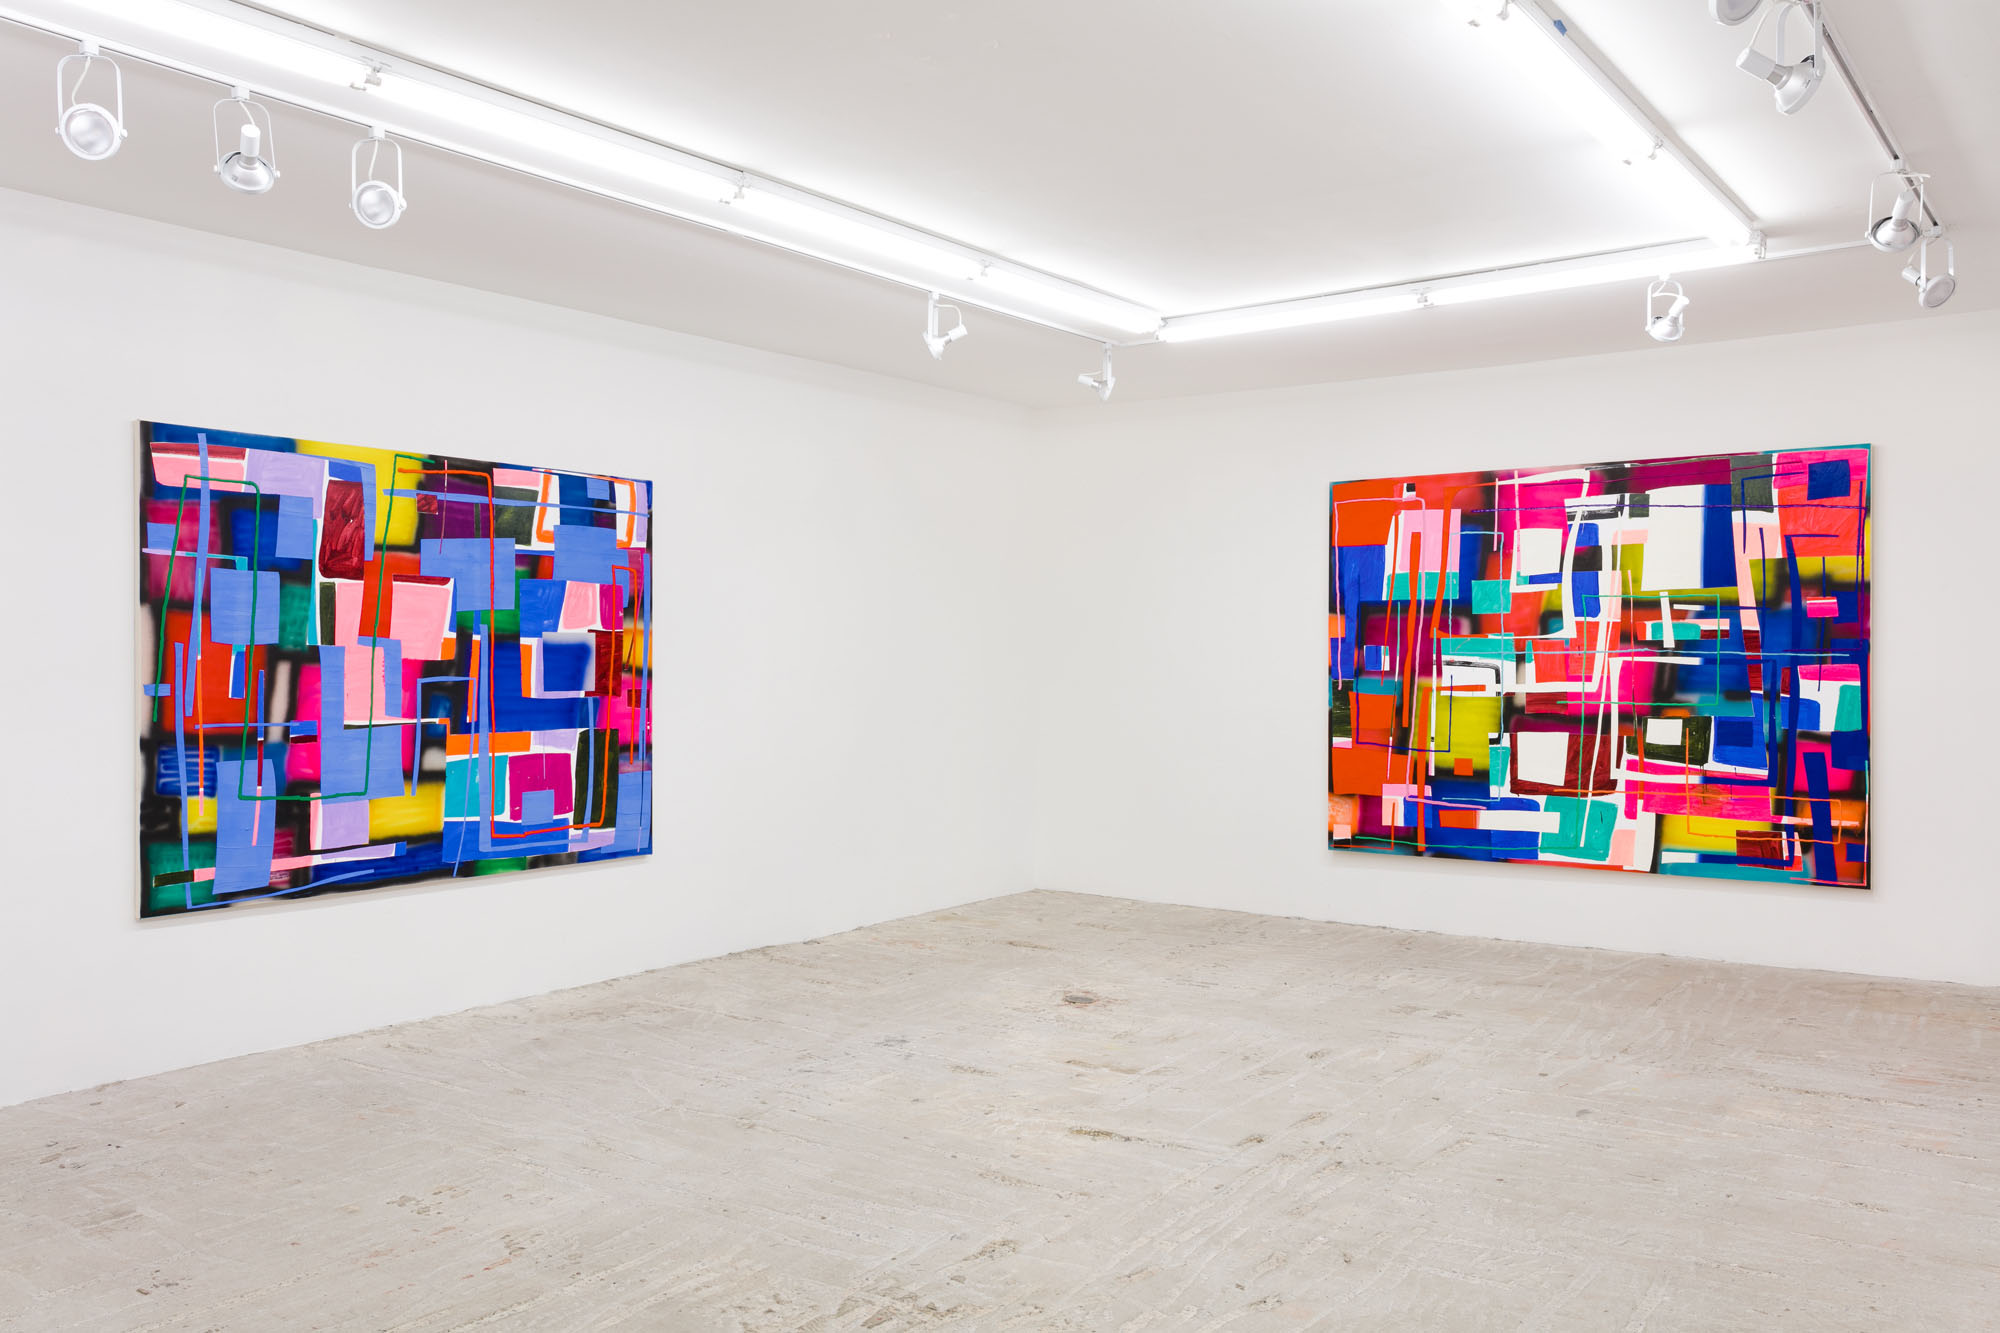 Trudy Benson   Closer Than They Appear   August 30 - October 7, 2018  Installation view